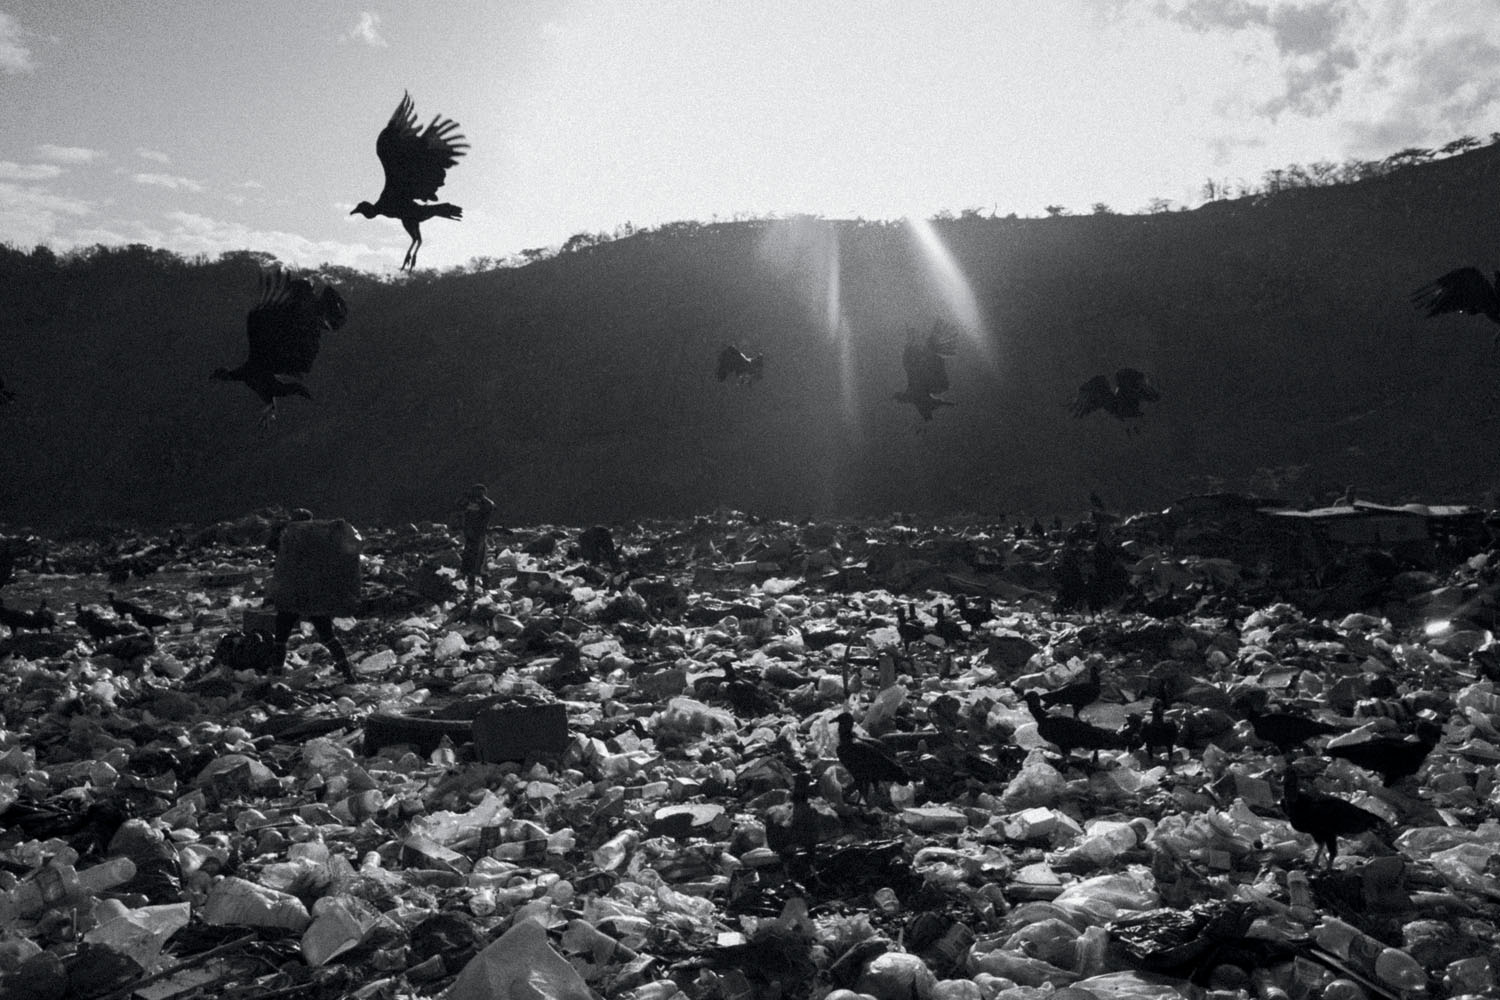 Photograph by Fabiola Ferrero. A garbage dump located on the outskirts of Caracas. Following the country's severe food shortage, more and more families search for food scraps here.